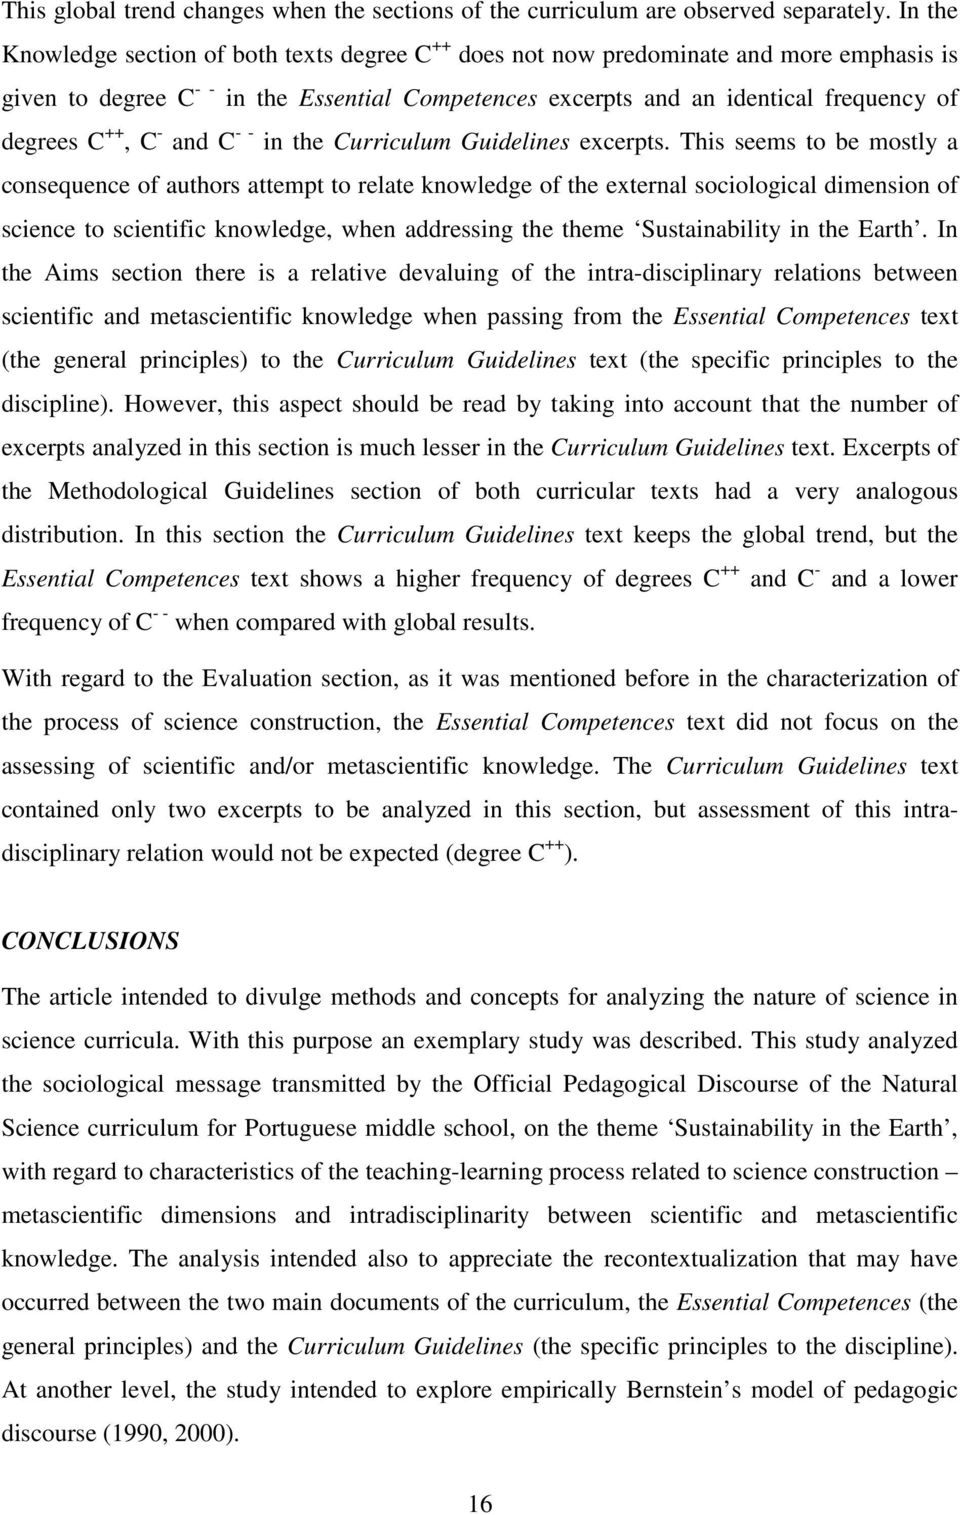 ++, C - and C - - in the Curriculum Guidelines excerpts.